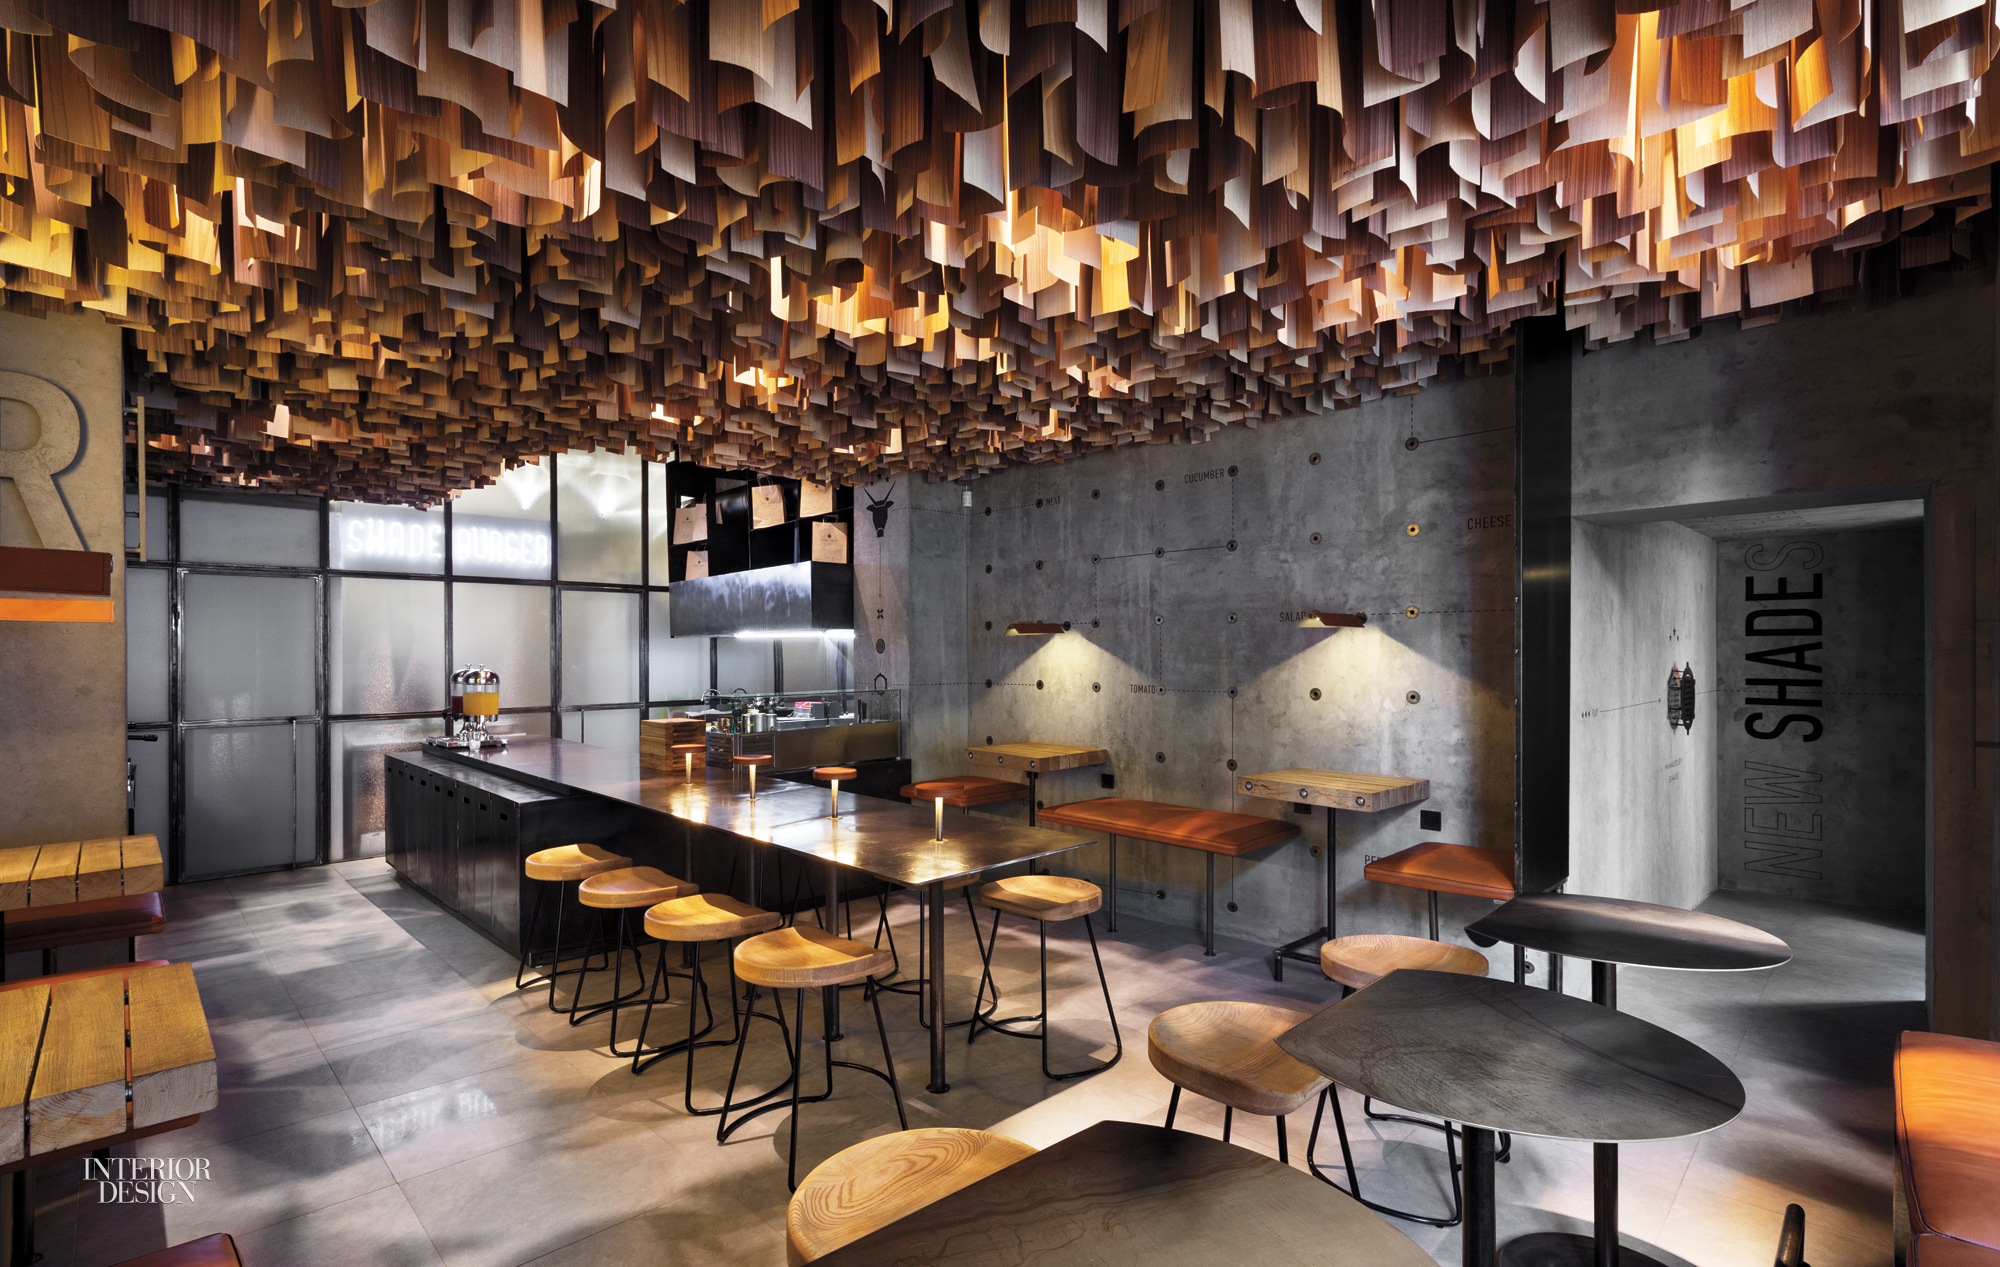 Restaurant Design Concepts Hot New Restaurant Designs From Hong Kong To Mexico City